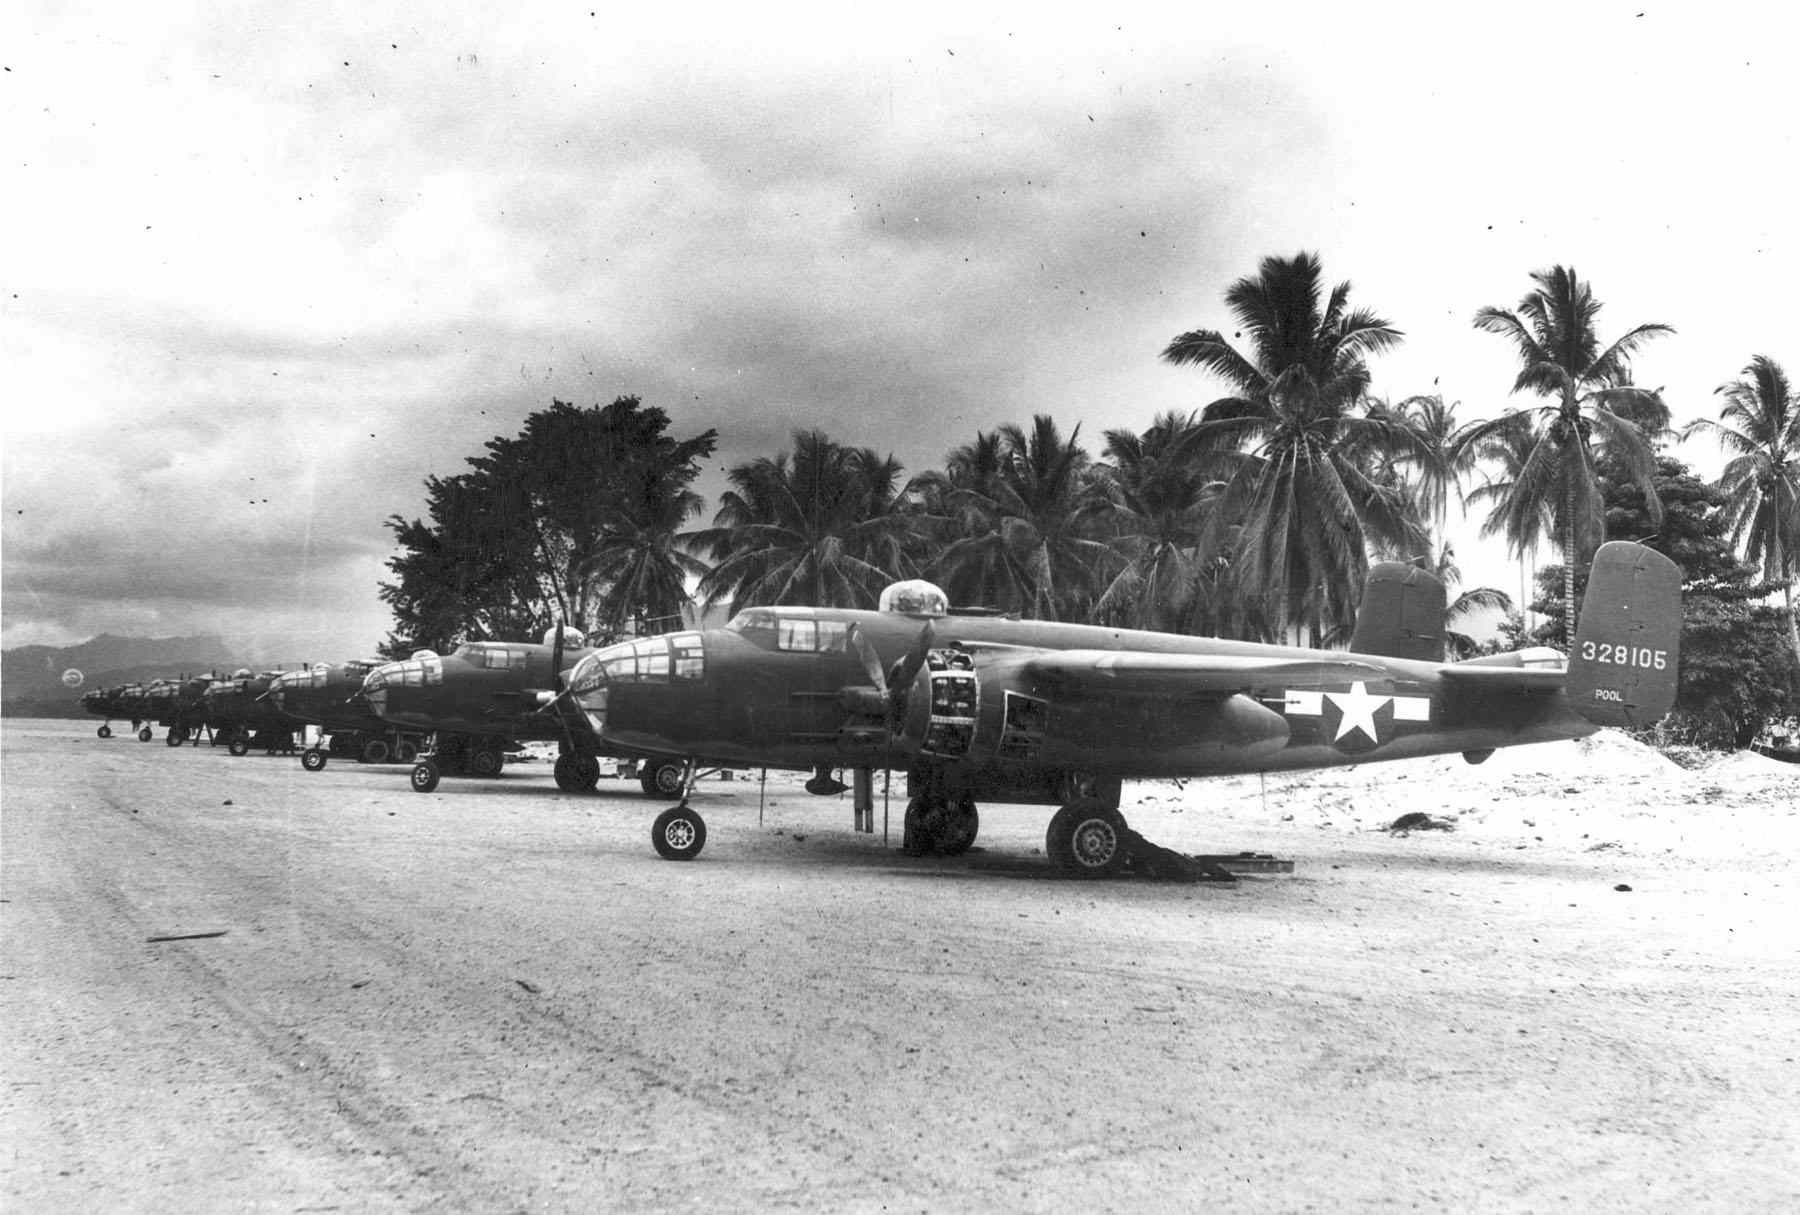 B-25 bombers lined up on a runway in the south Pacific.